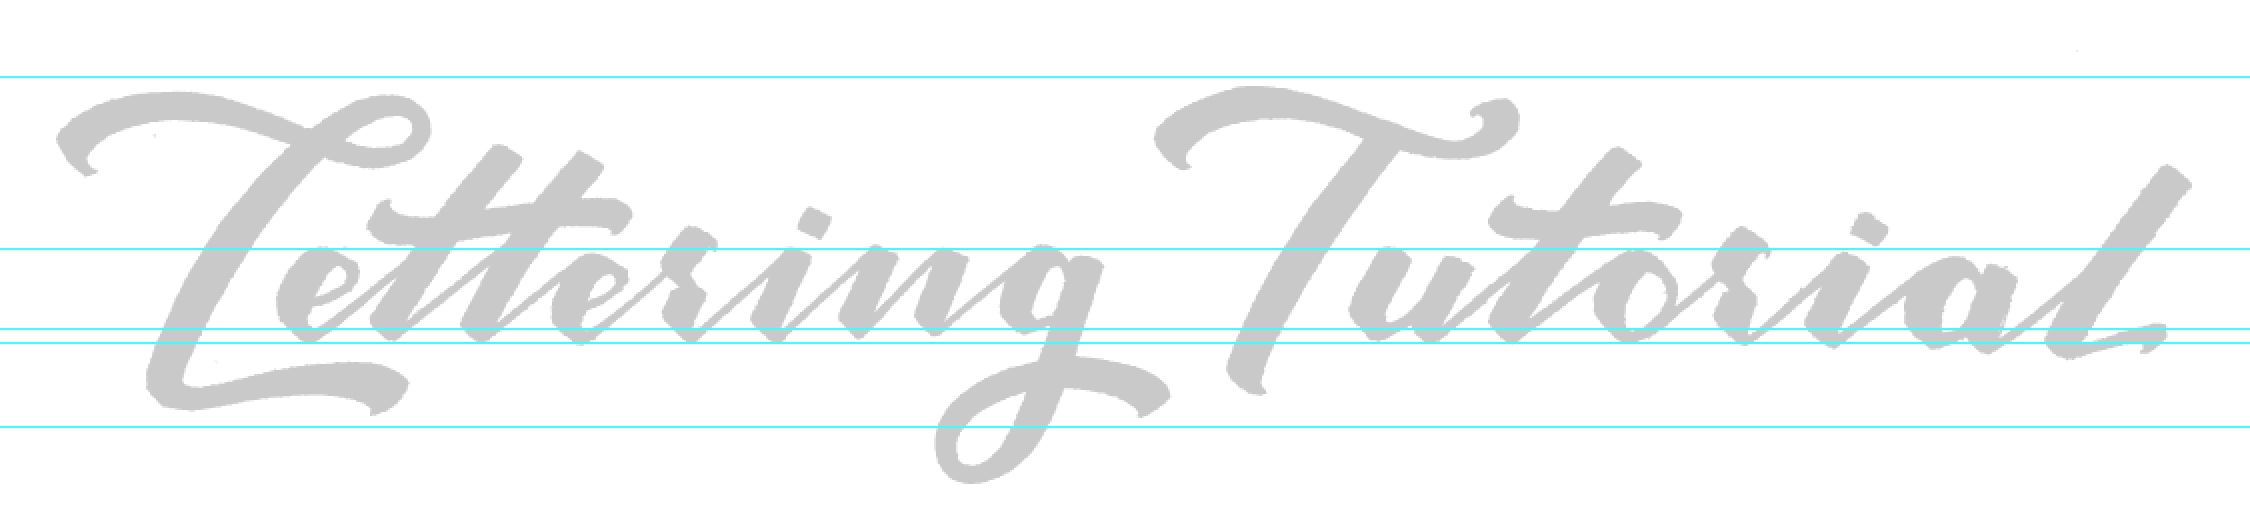 Lettering Tutorial Logo Live Trace